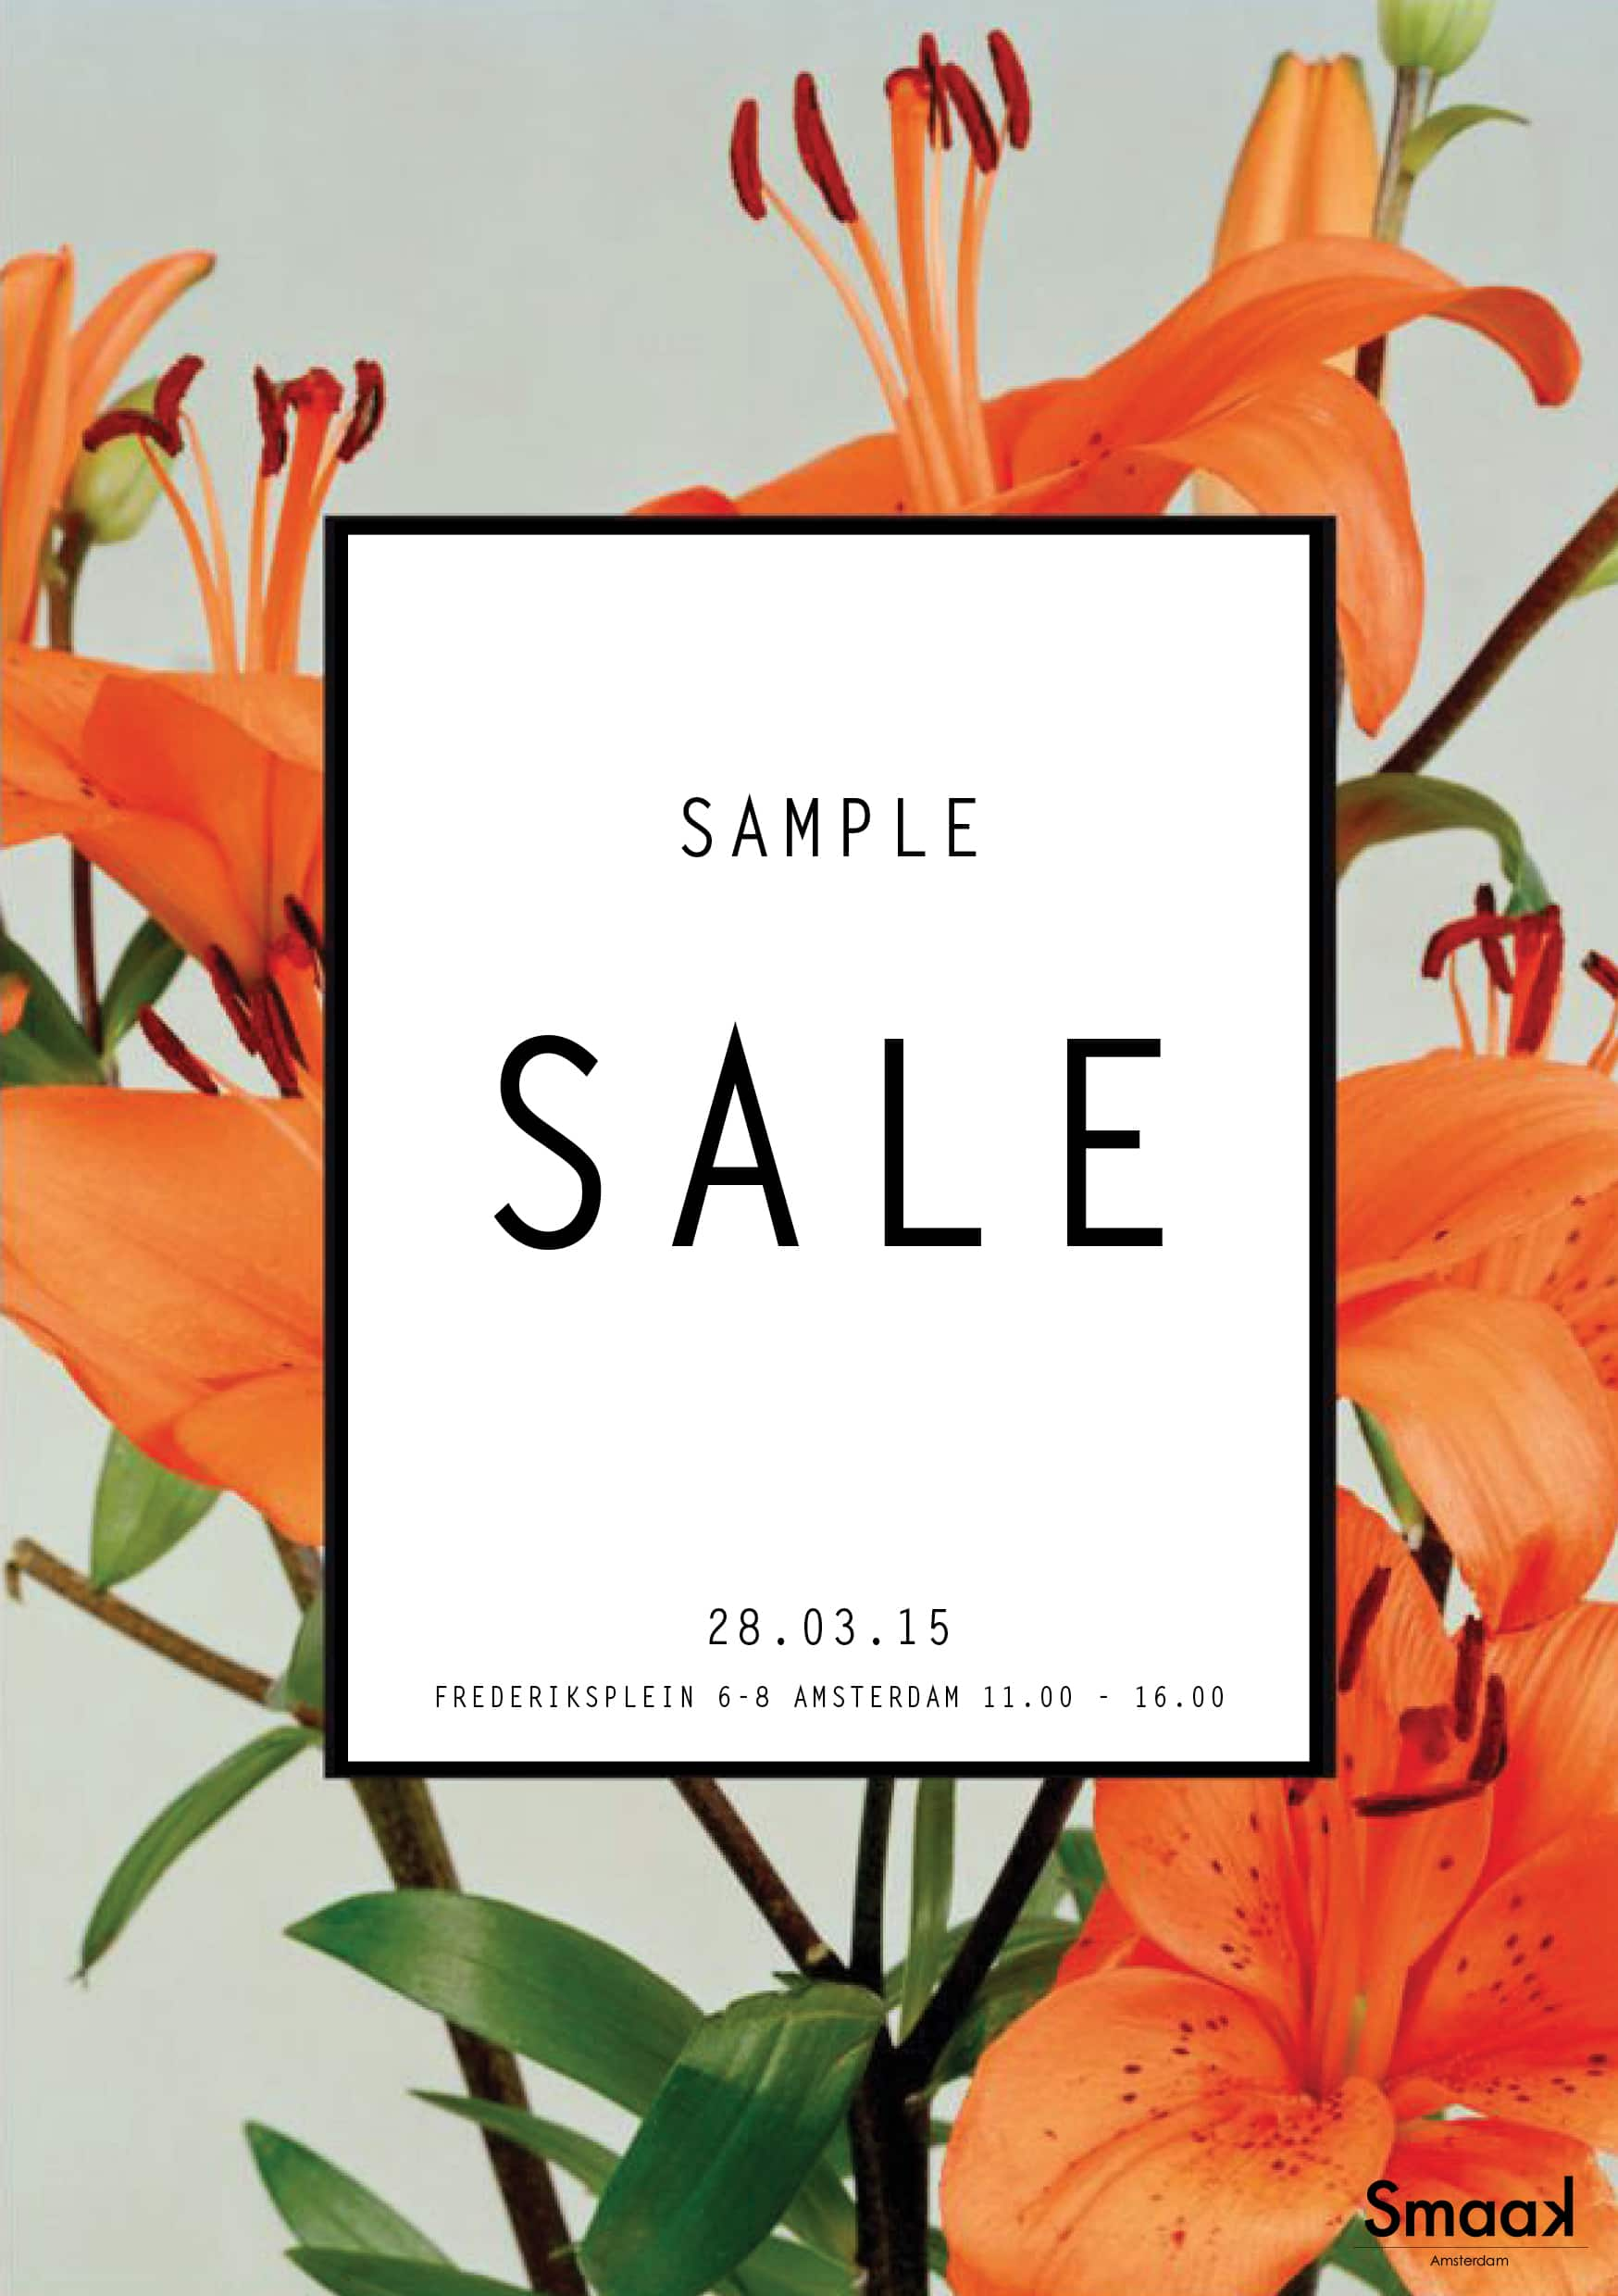 Mizhattan - Sensible living with style: *SAMPLE SALE ...